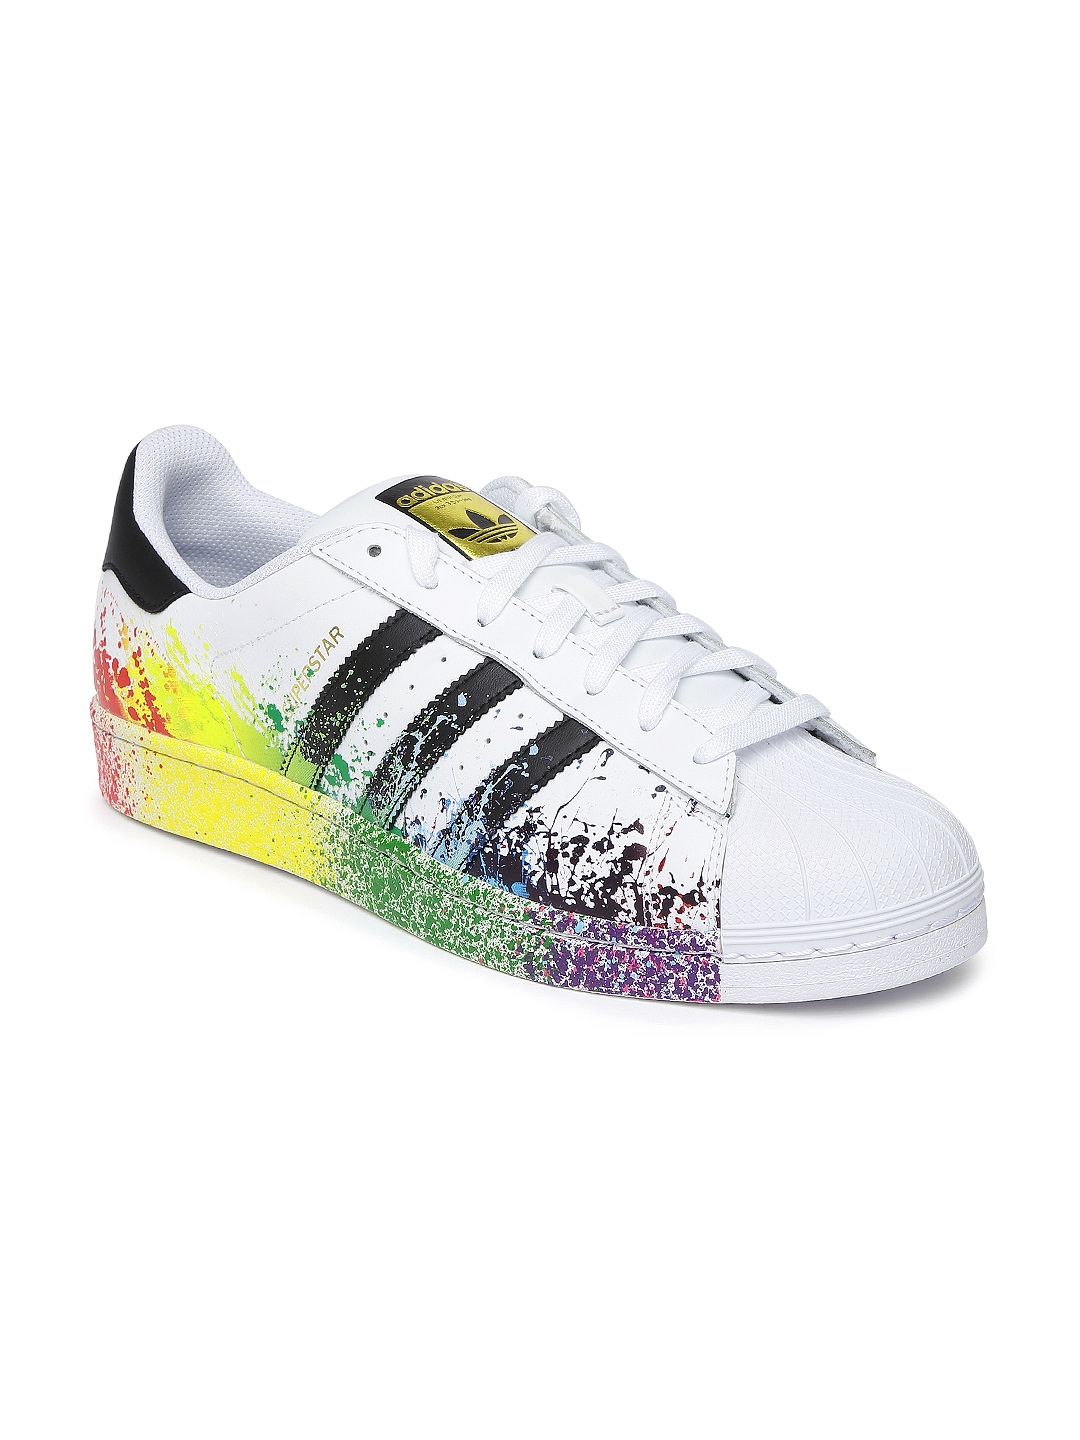 ADIDAS SUPERSTAR DUBAI IRIDESCENT RAINBOW 3D CG3596